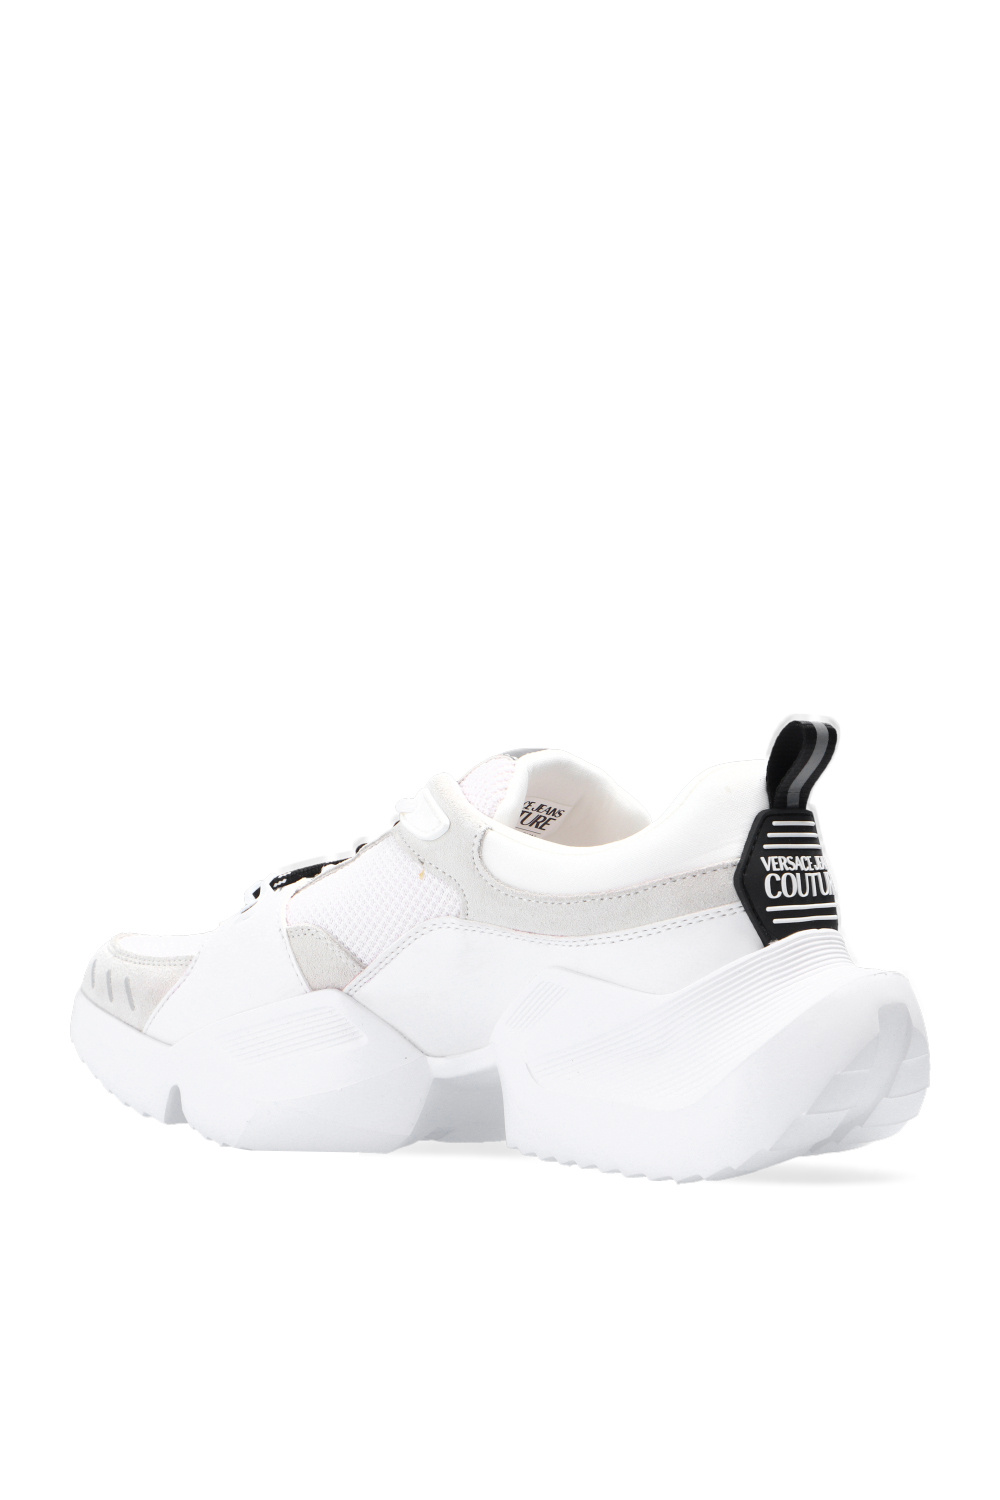 Versace Jeans Couture 'Gravity' sneakers